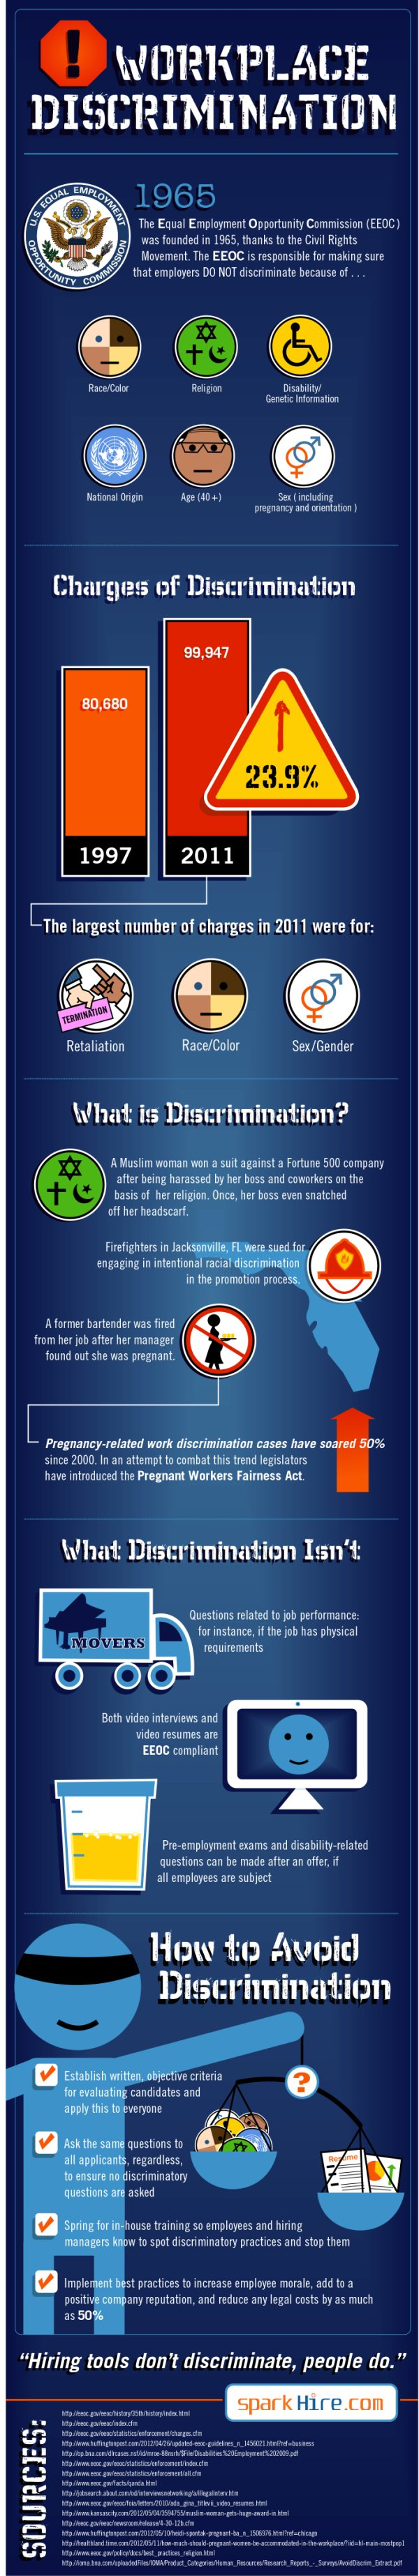 Interesting Facts About Workplace Discrimination